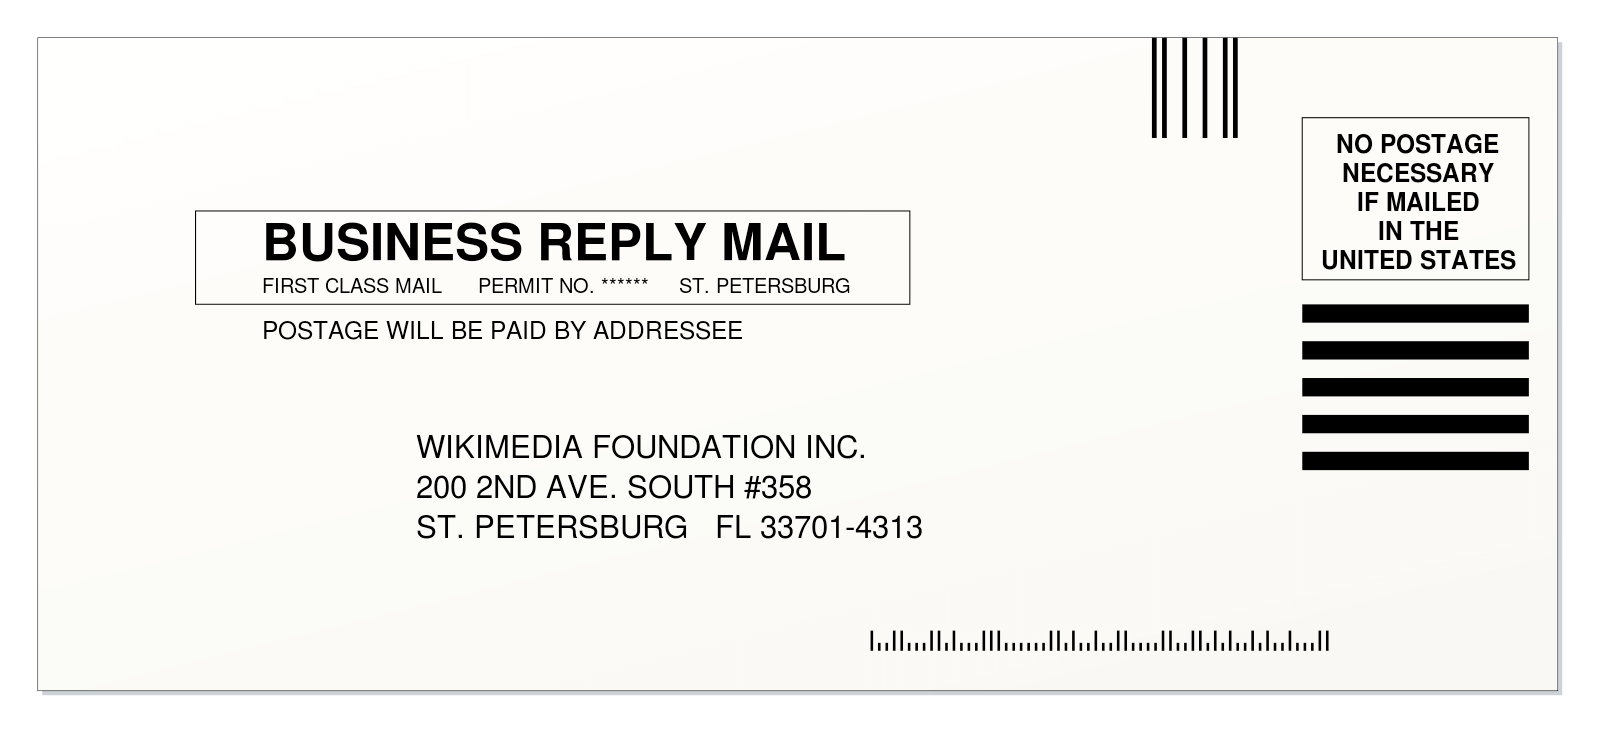 US Postal Service Business Reply Mail